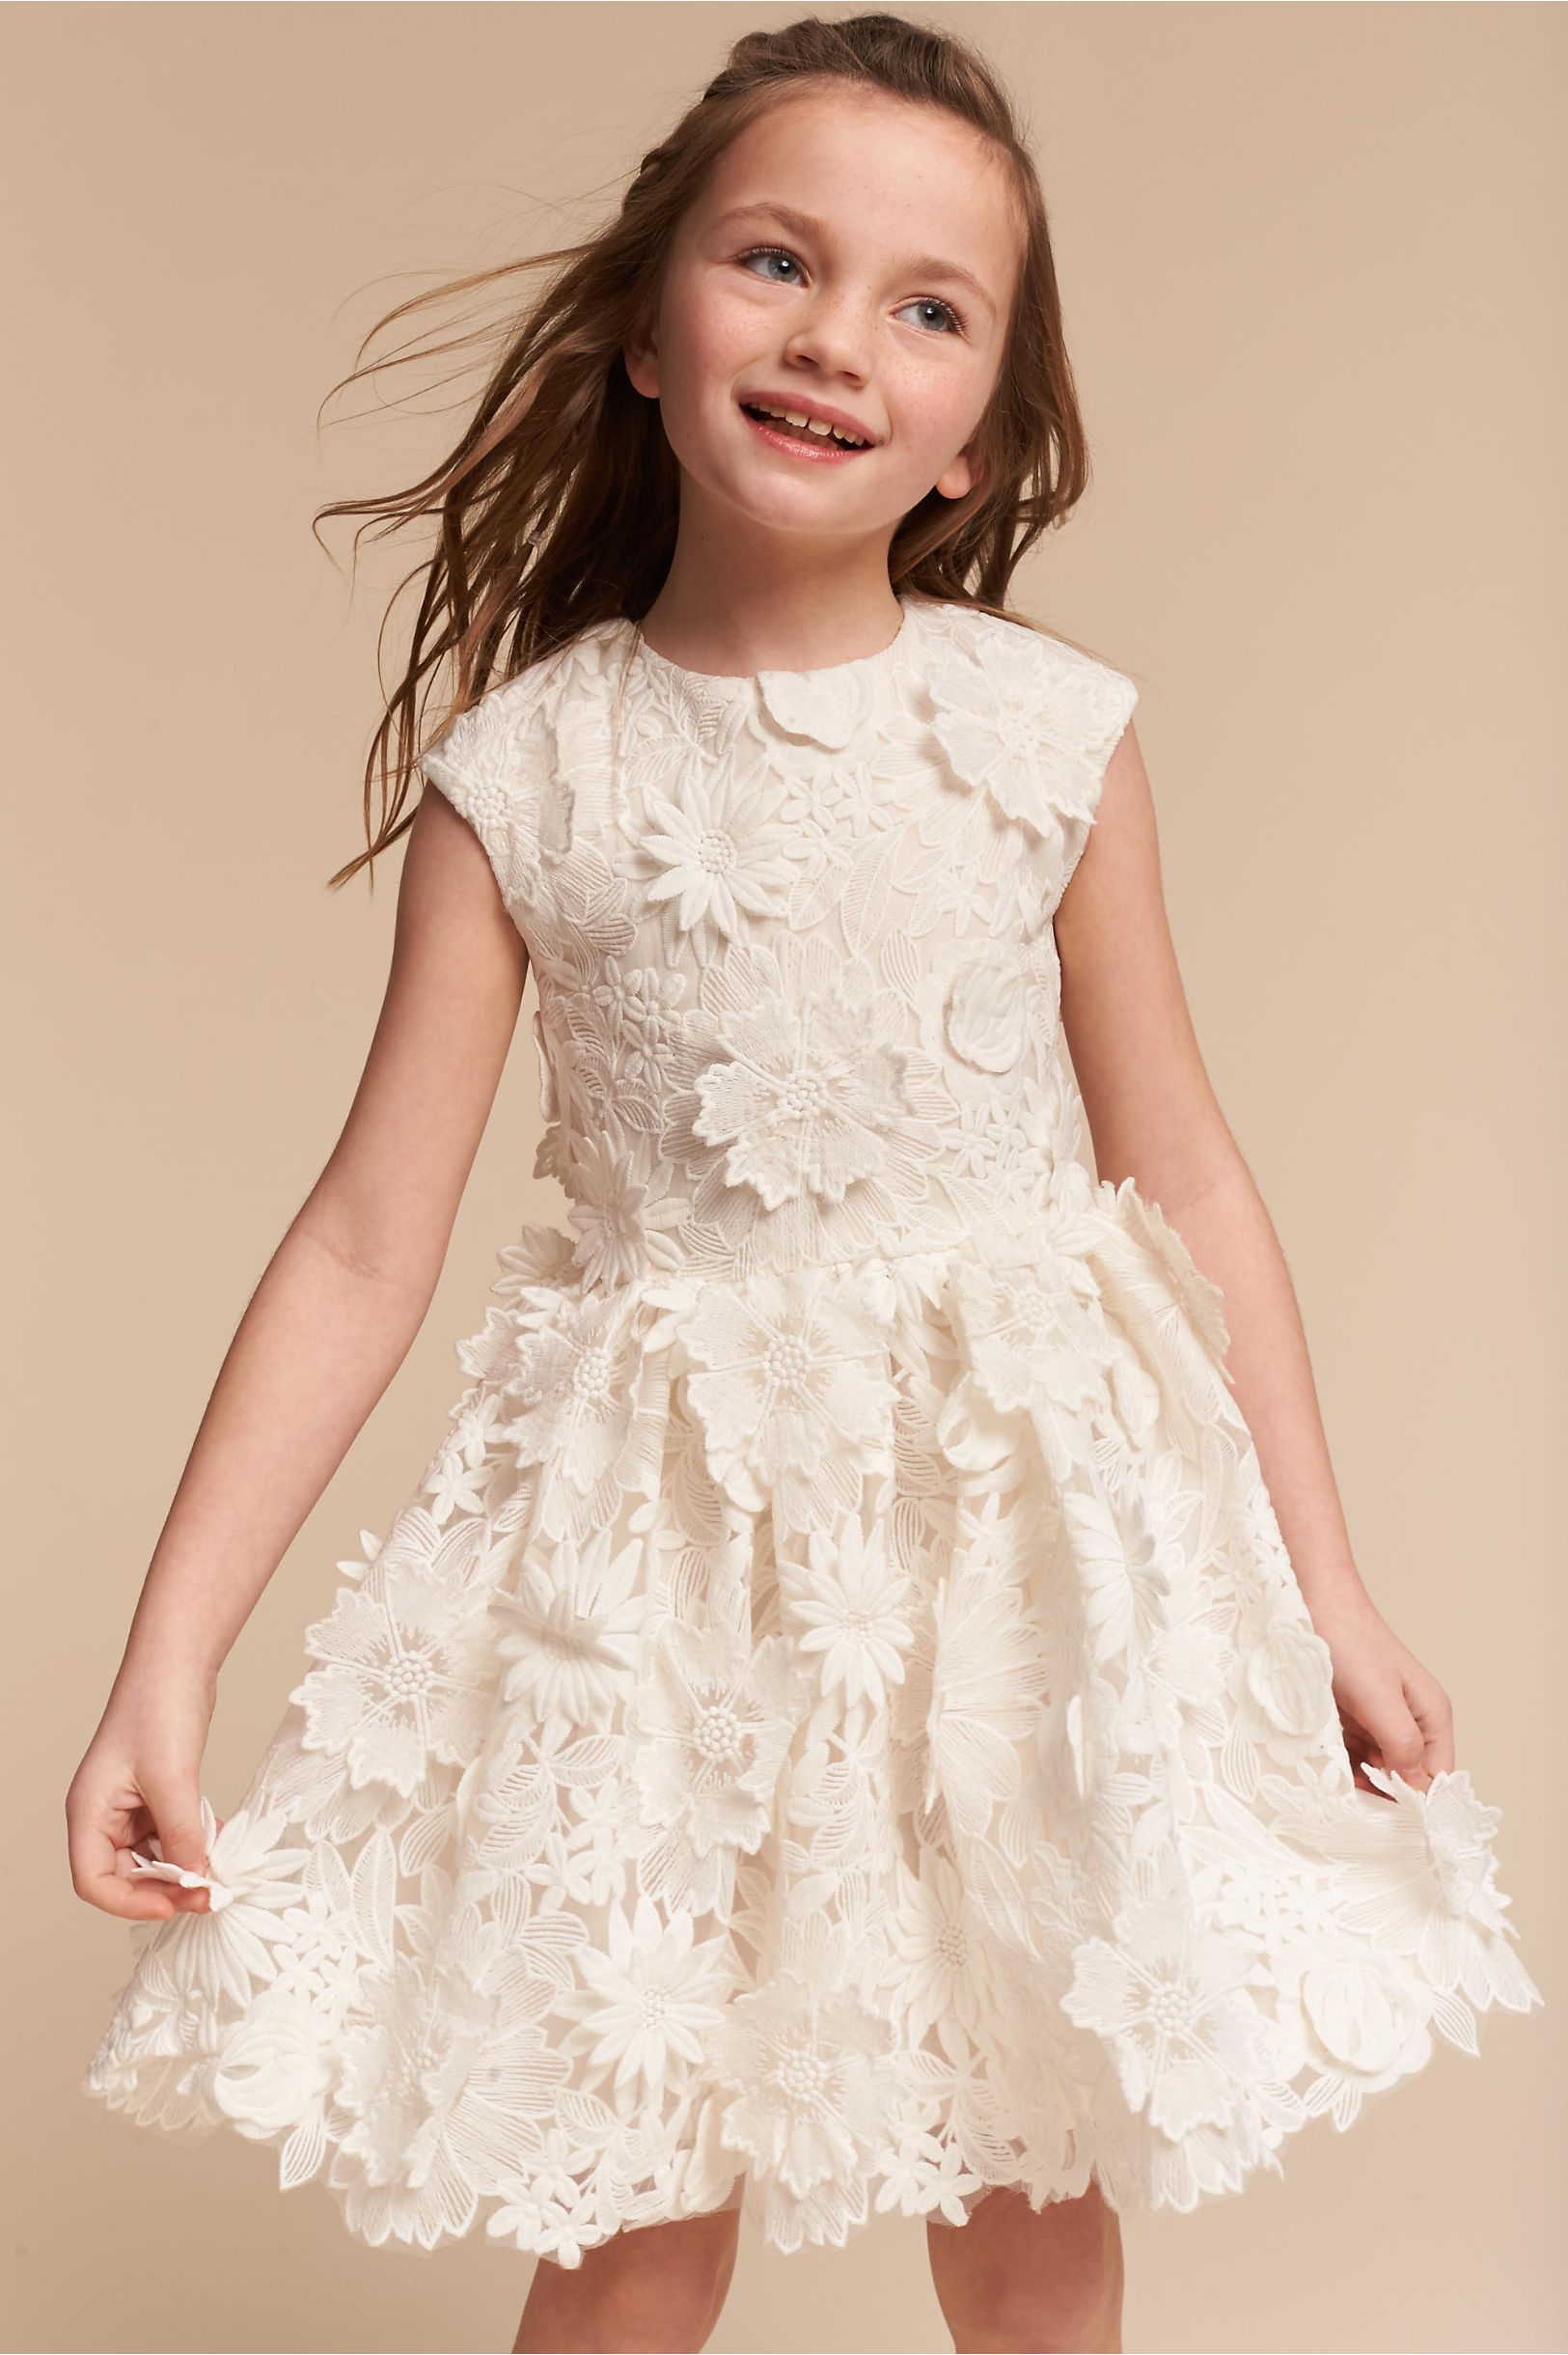 The Children's Place has the widest collection of quality girls rompers in a range of styles. Shop at the PLACE where big fashion meets little prices!